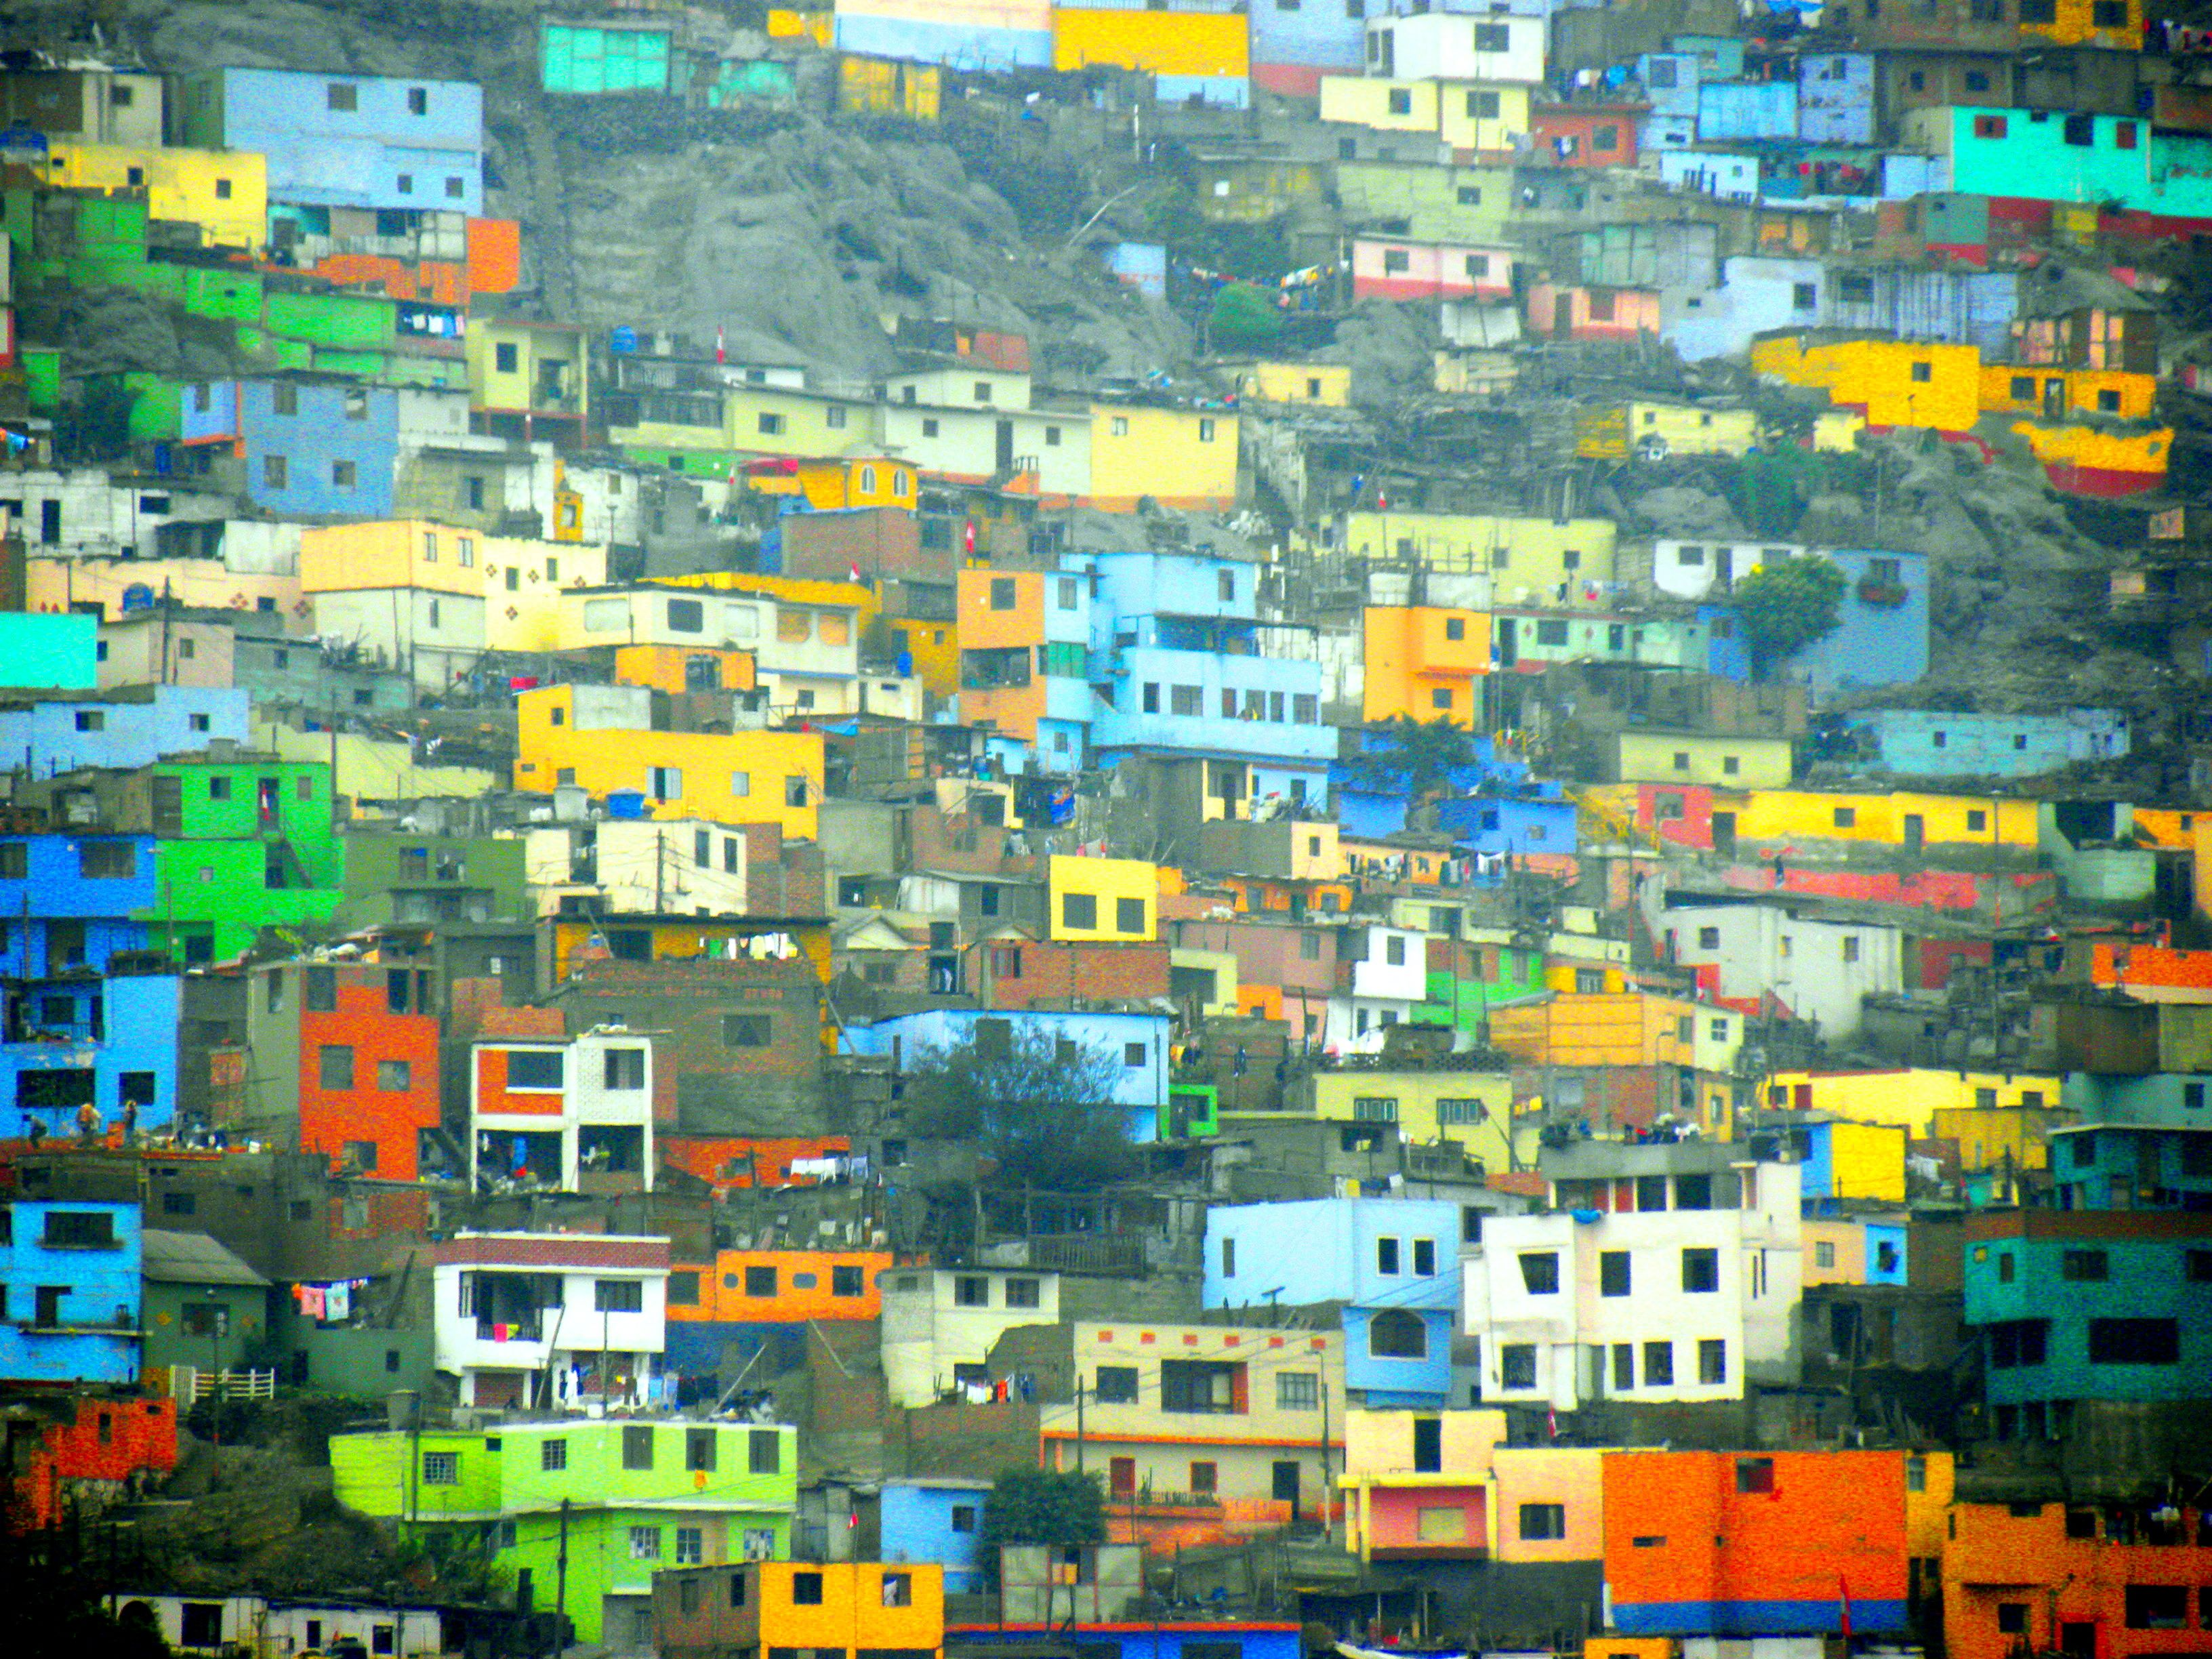 Lima Peru Comes After Bogota Columbia In The Learn Your South - South america capital song